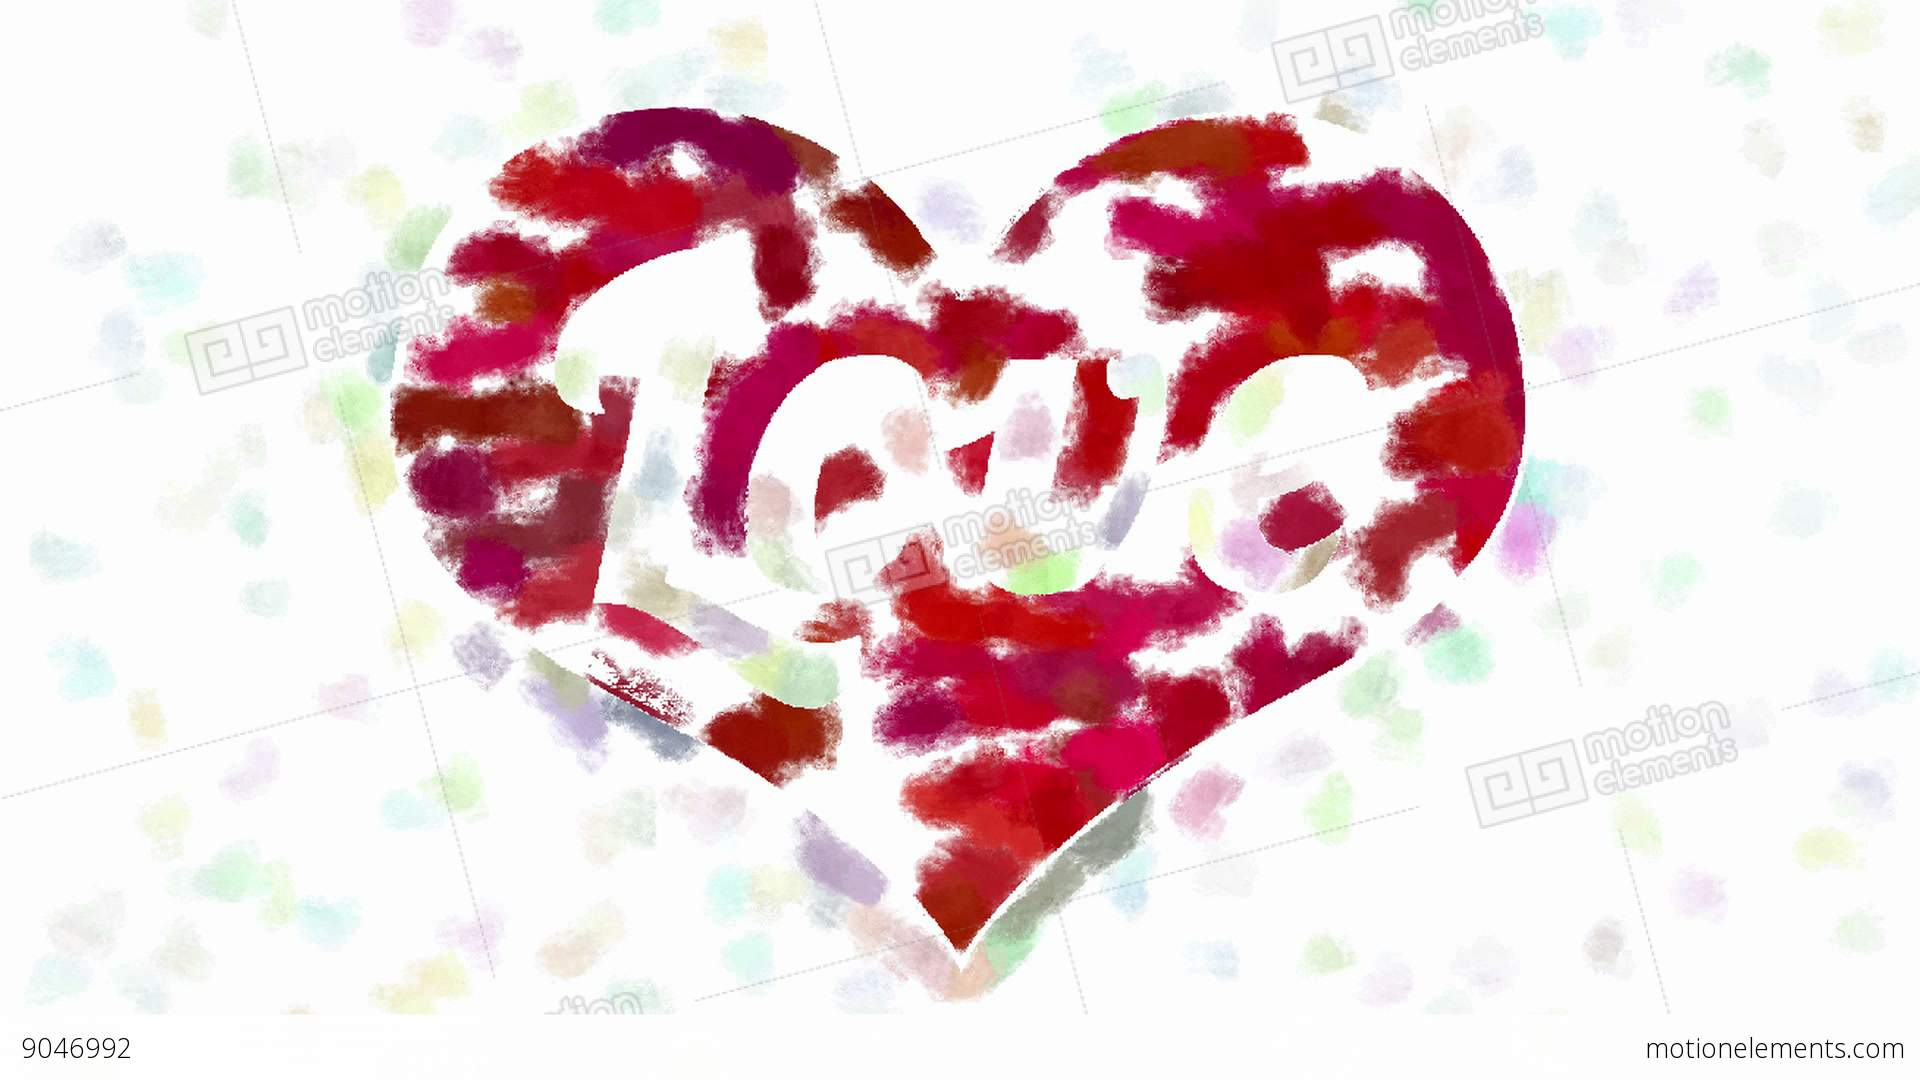 Word love in heart symbol abstract painting stock animation 9046992 word love in heart symbol abstract painting stock video footage biocorpaavc Image collections